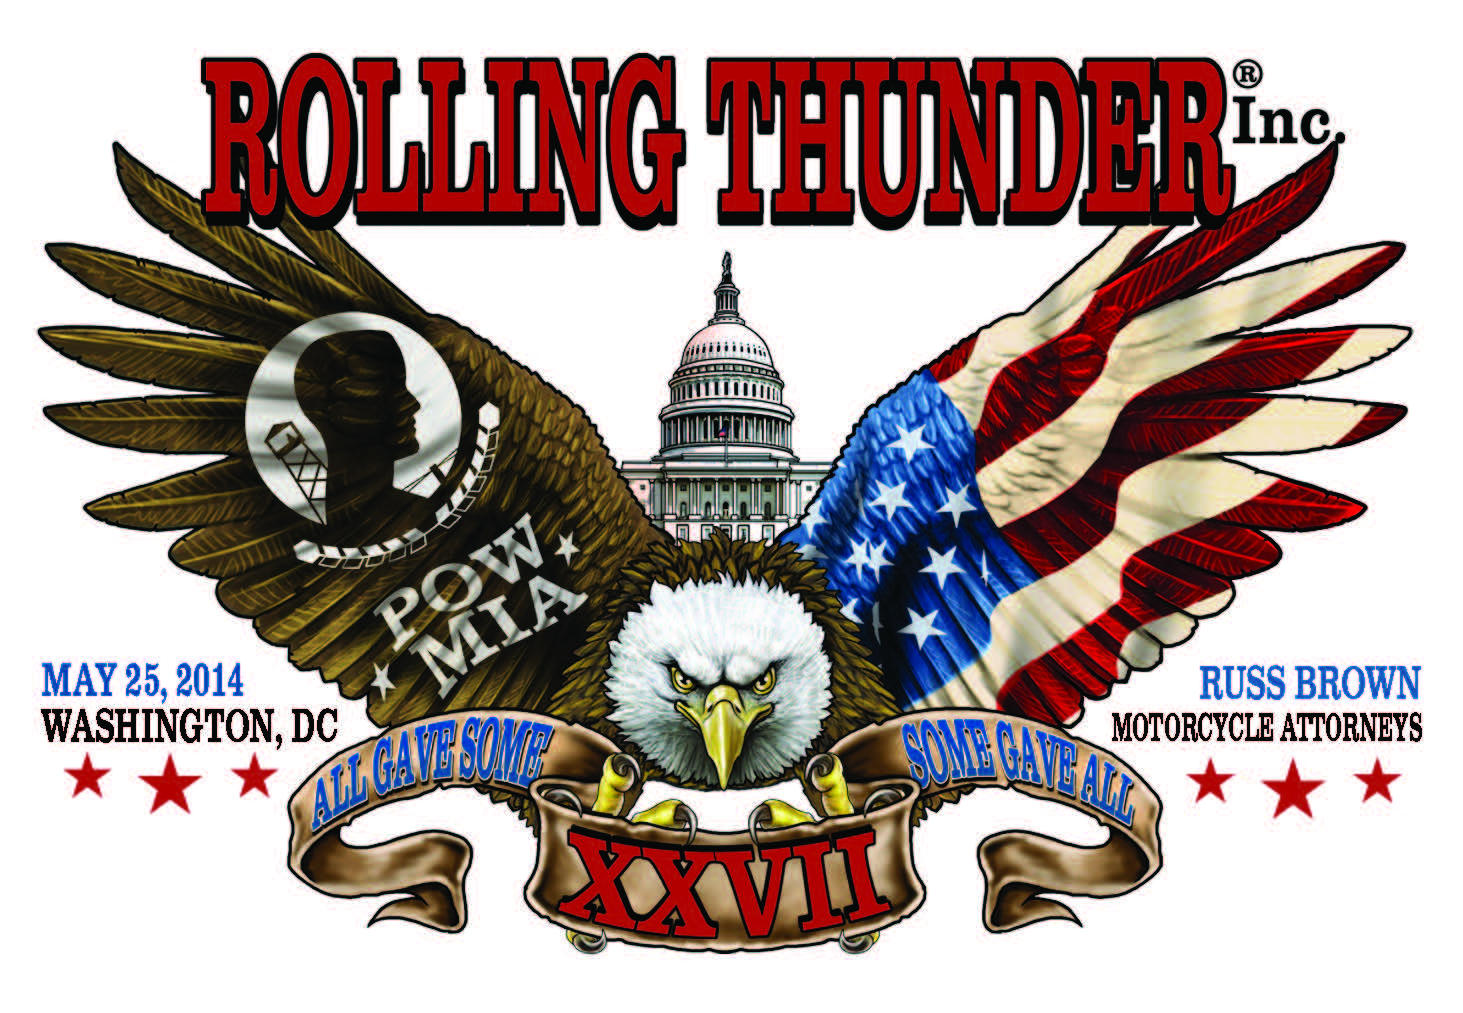 Rolling Thunder 2014 DC Bowe RBrown